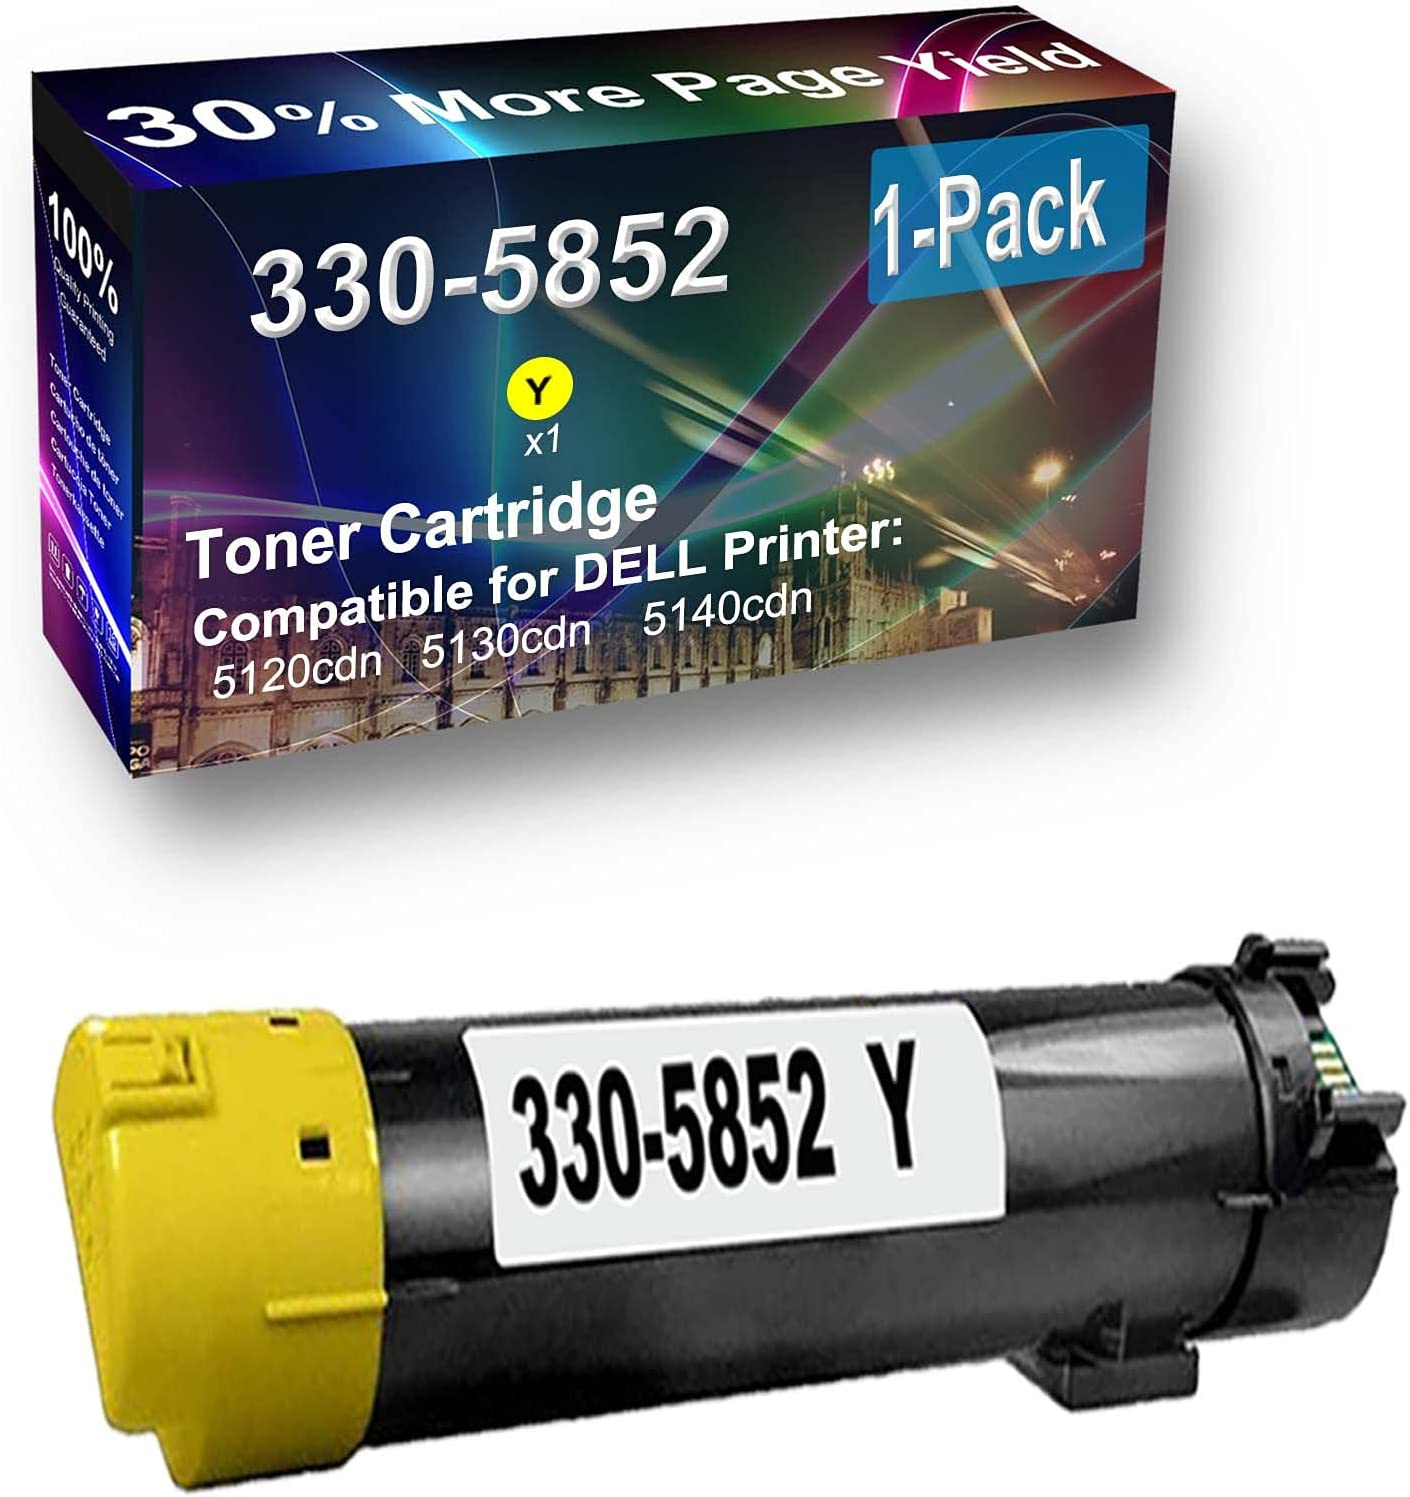 1-Pack (Yellow) Compatible High Capacity 330-5852 Toner Cartridge Used for Dell 5120cdn Printer